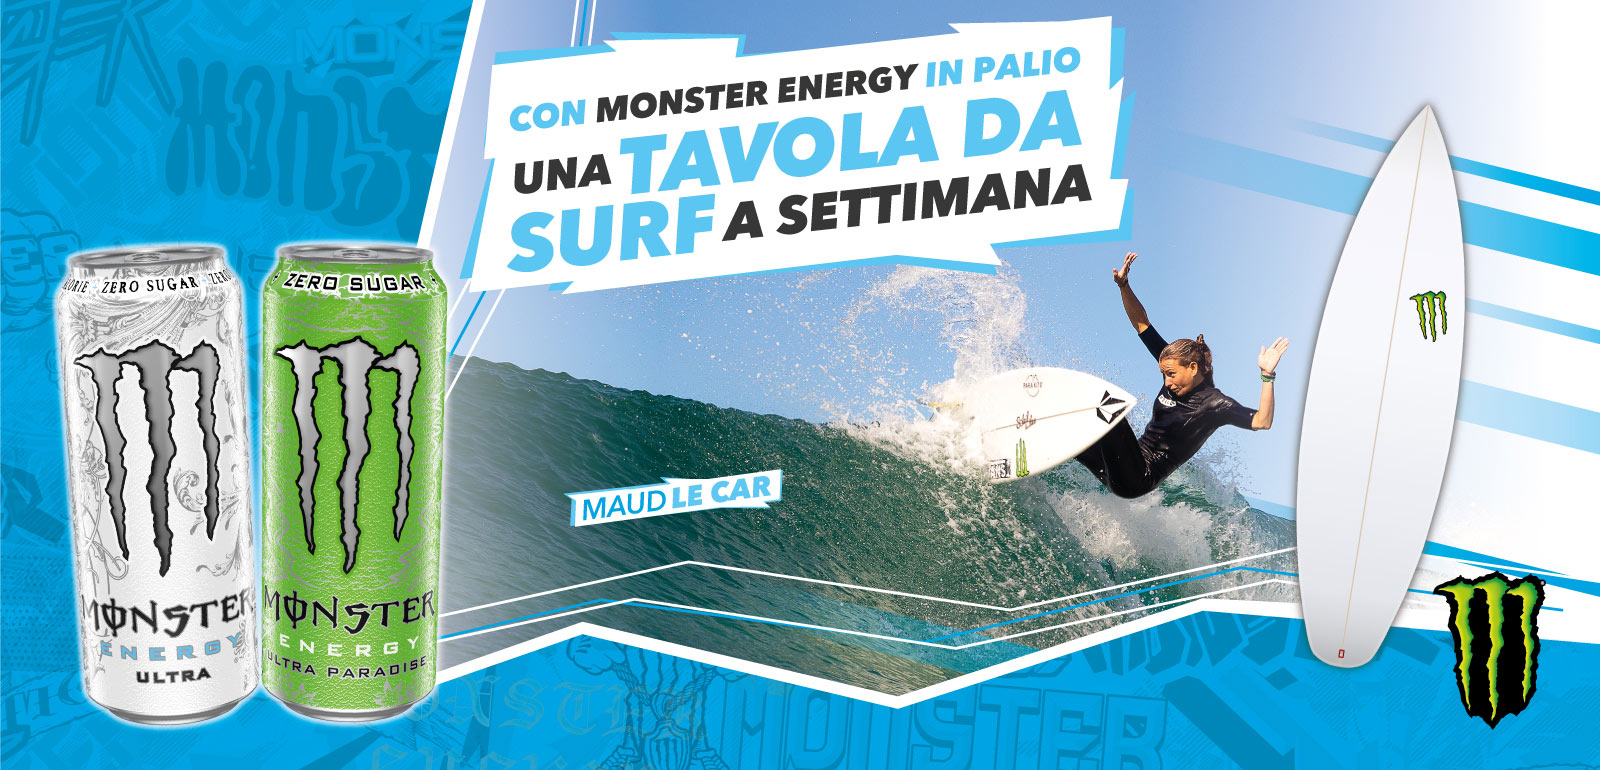 Monster energy vinci tavole da surf